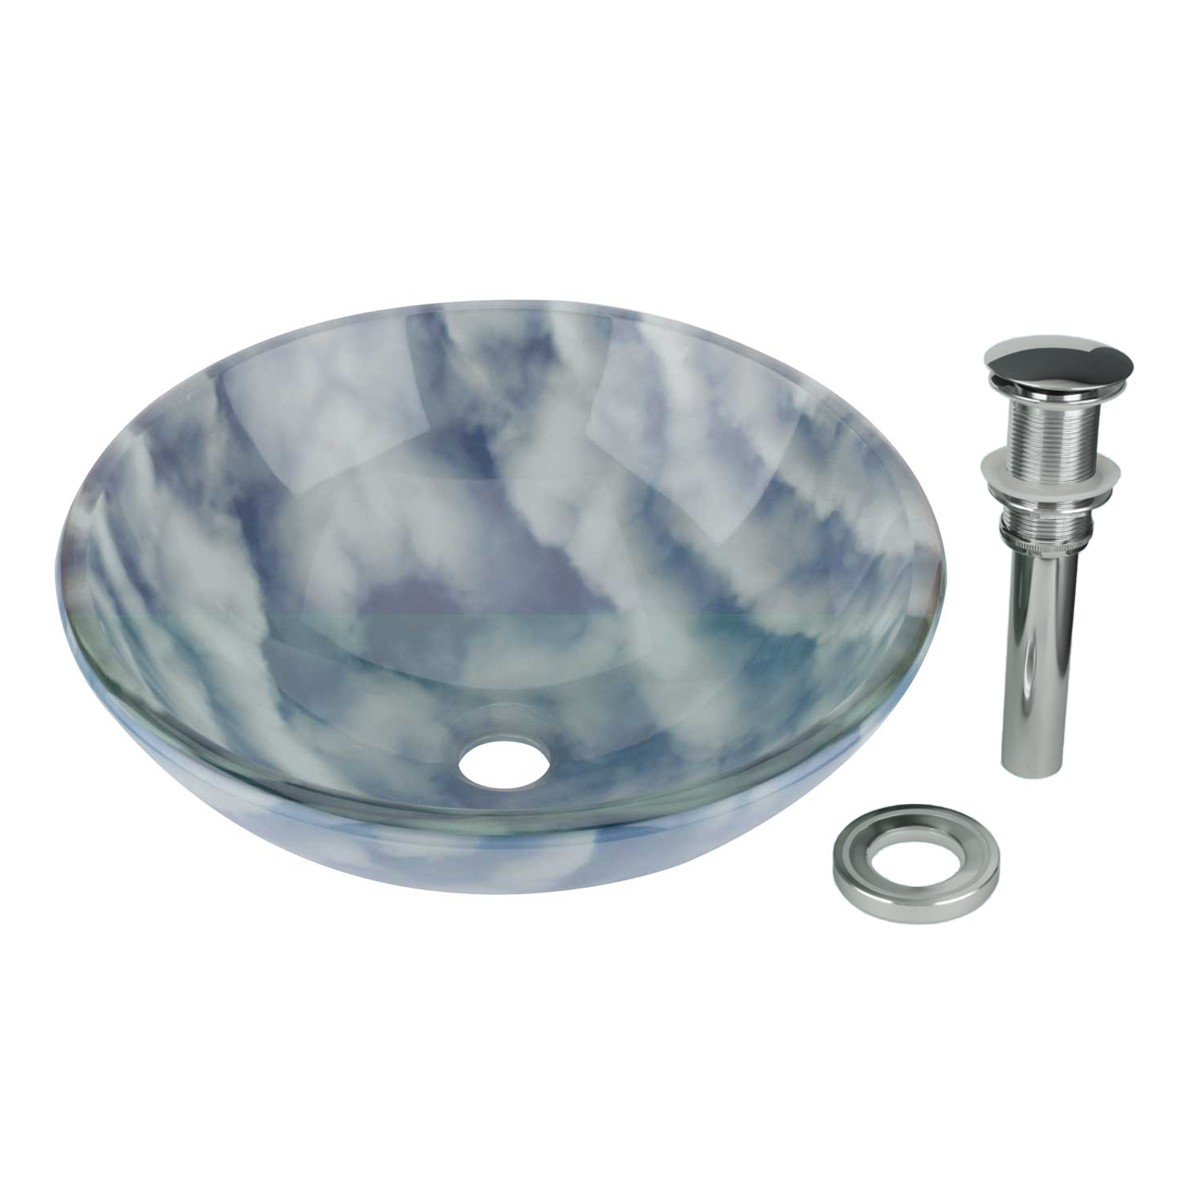 ... U003cPREu003eTempered Glass Vessel Sink With Drain, Blue White Cloud Design Bowl  ...